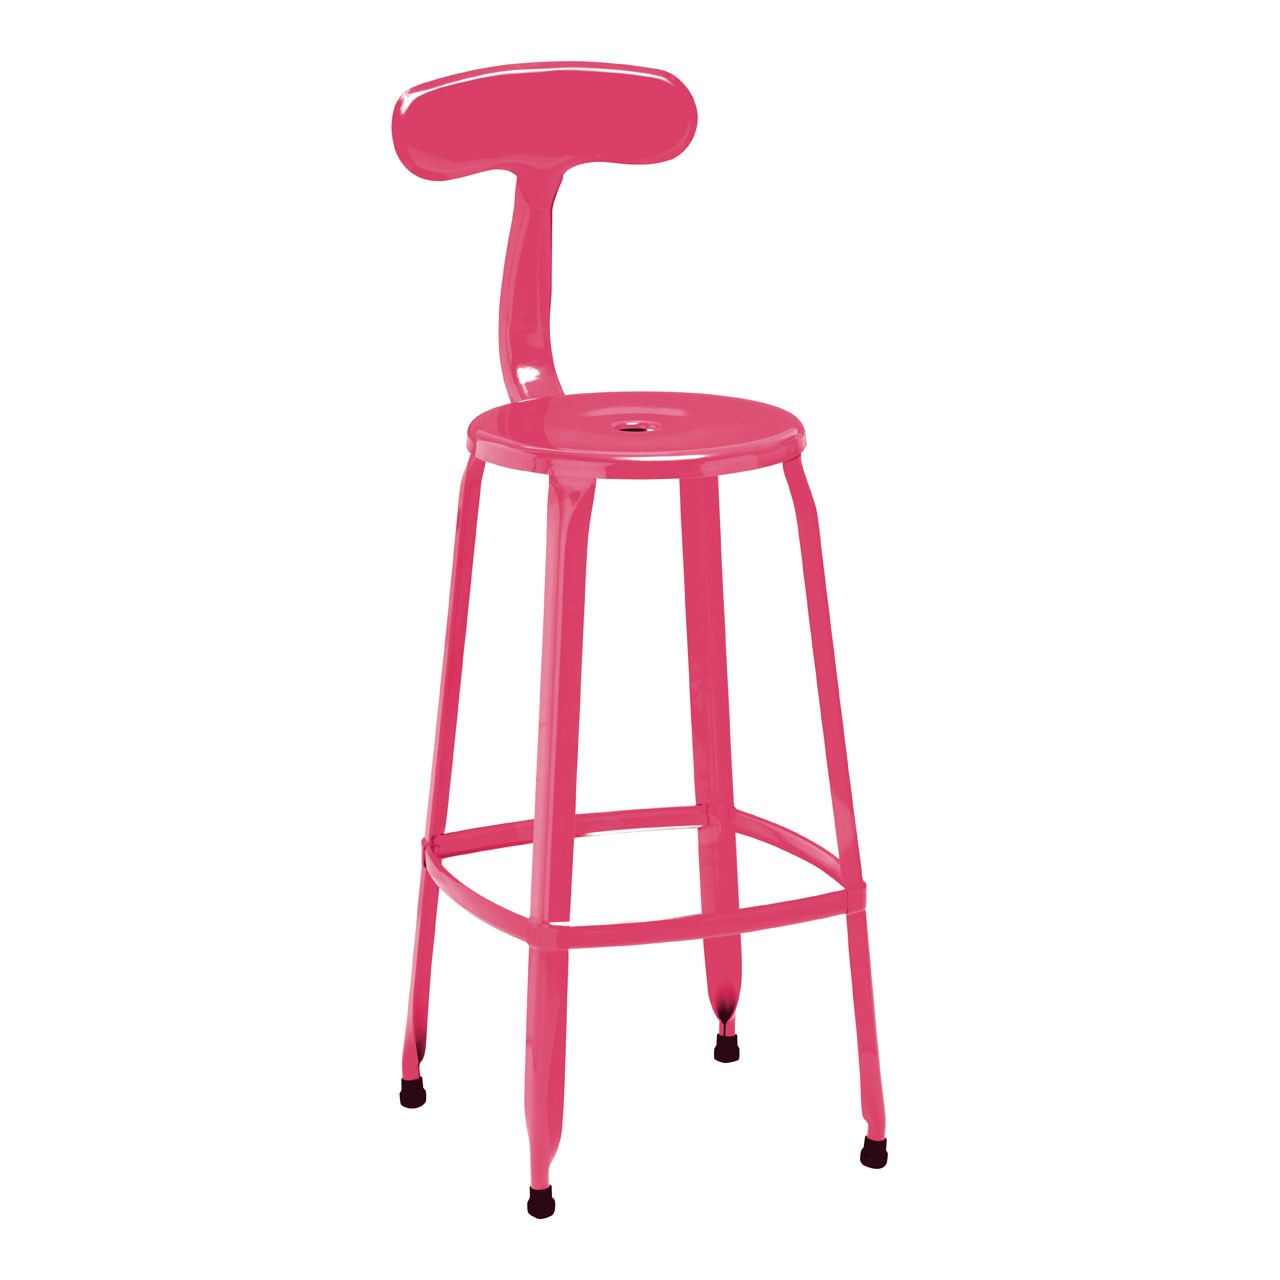 4 x Bar Breakfast Chair Disc Chair Powder Coated Metal Hot Pink